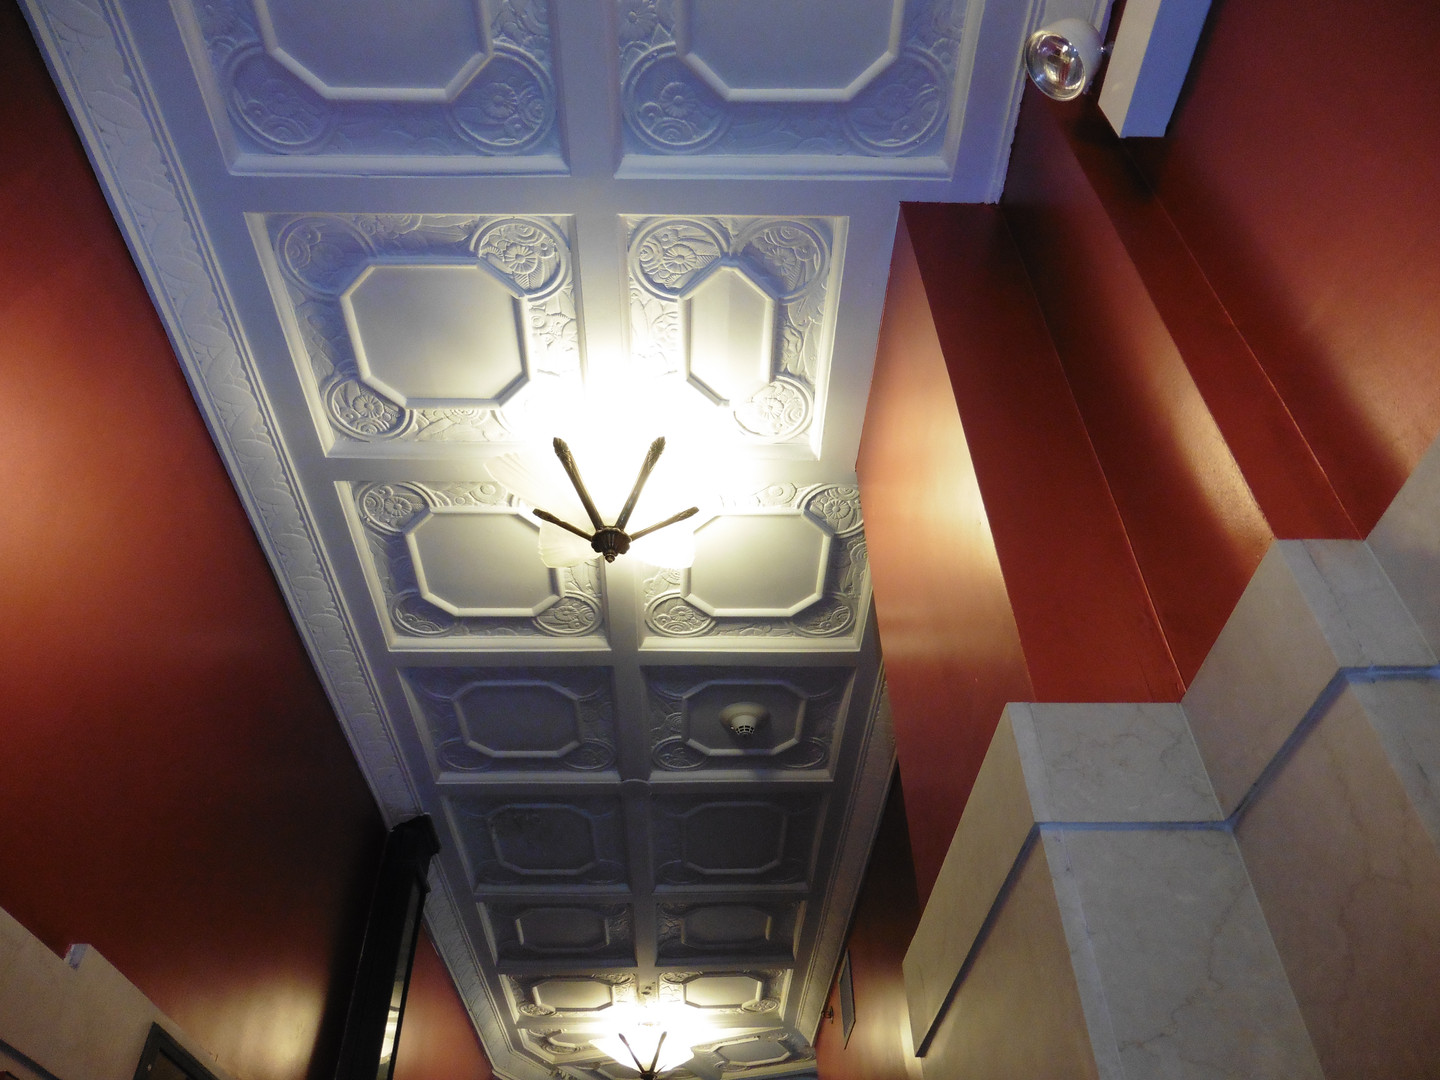 Hairpin ceiling 0614 (2015_01_13 18_31_1